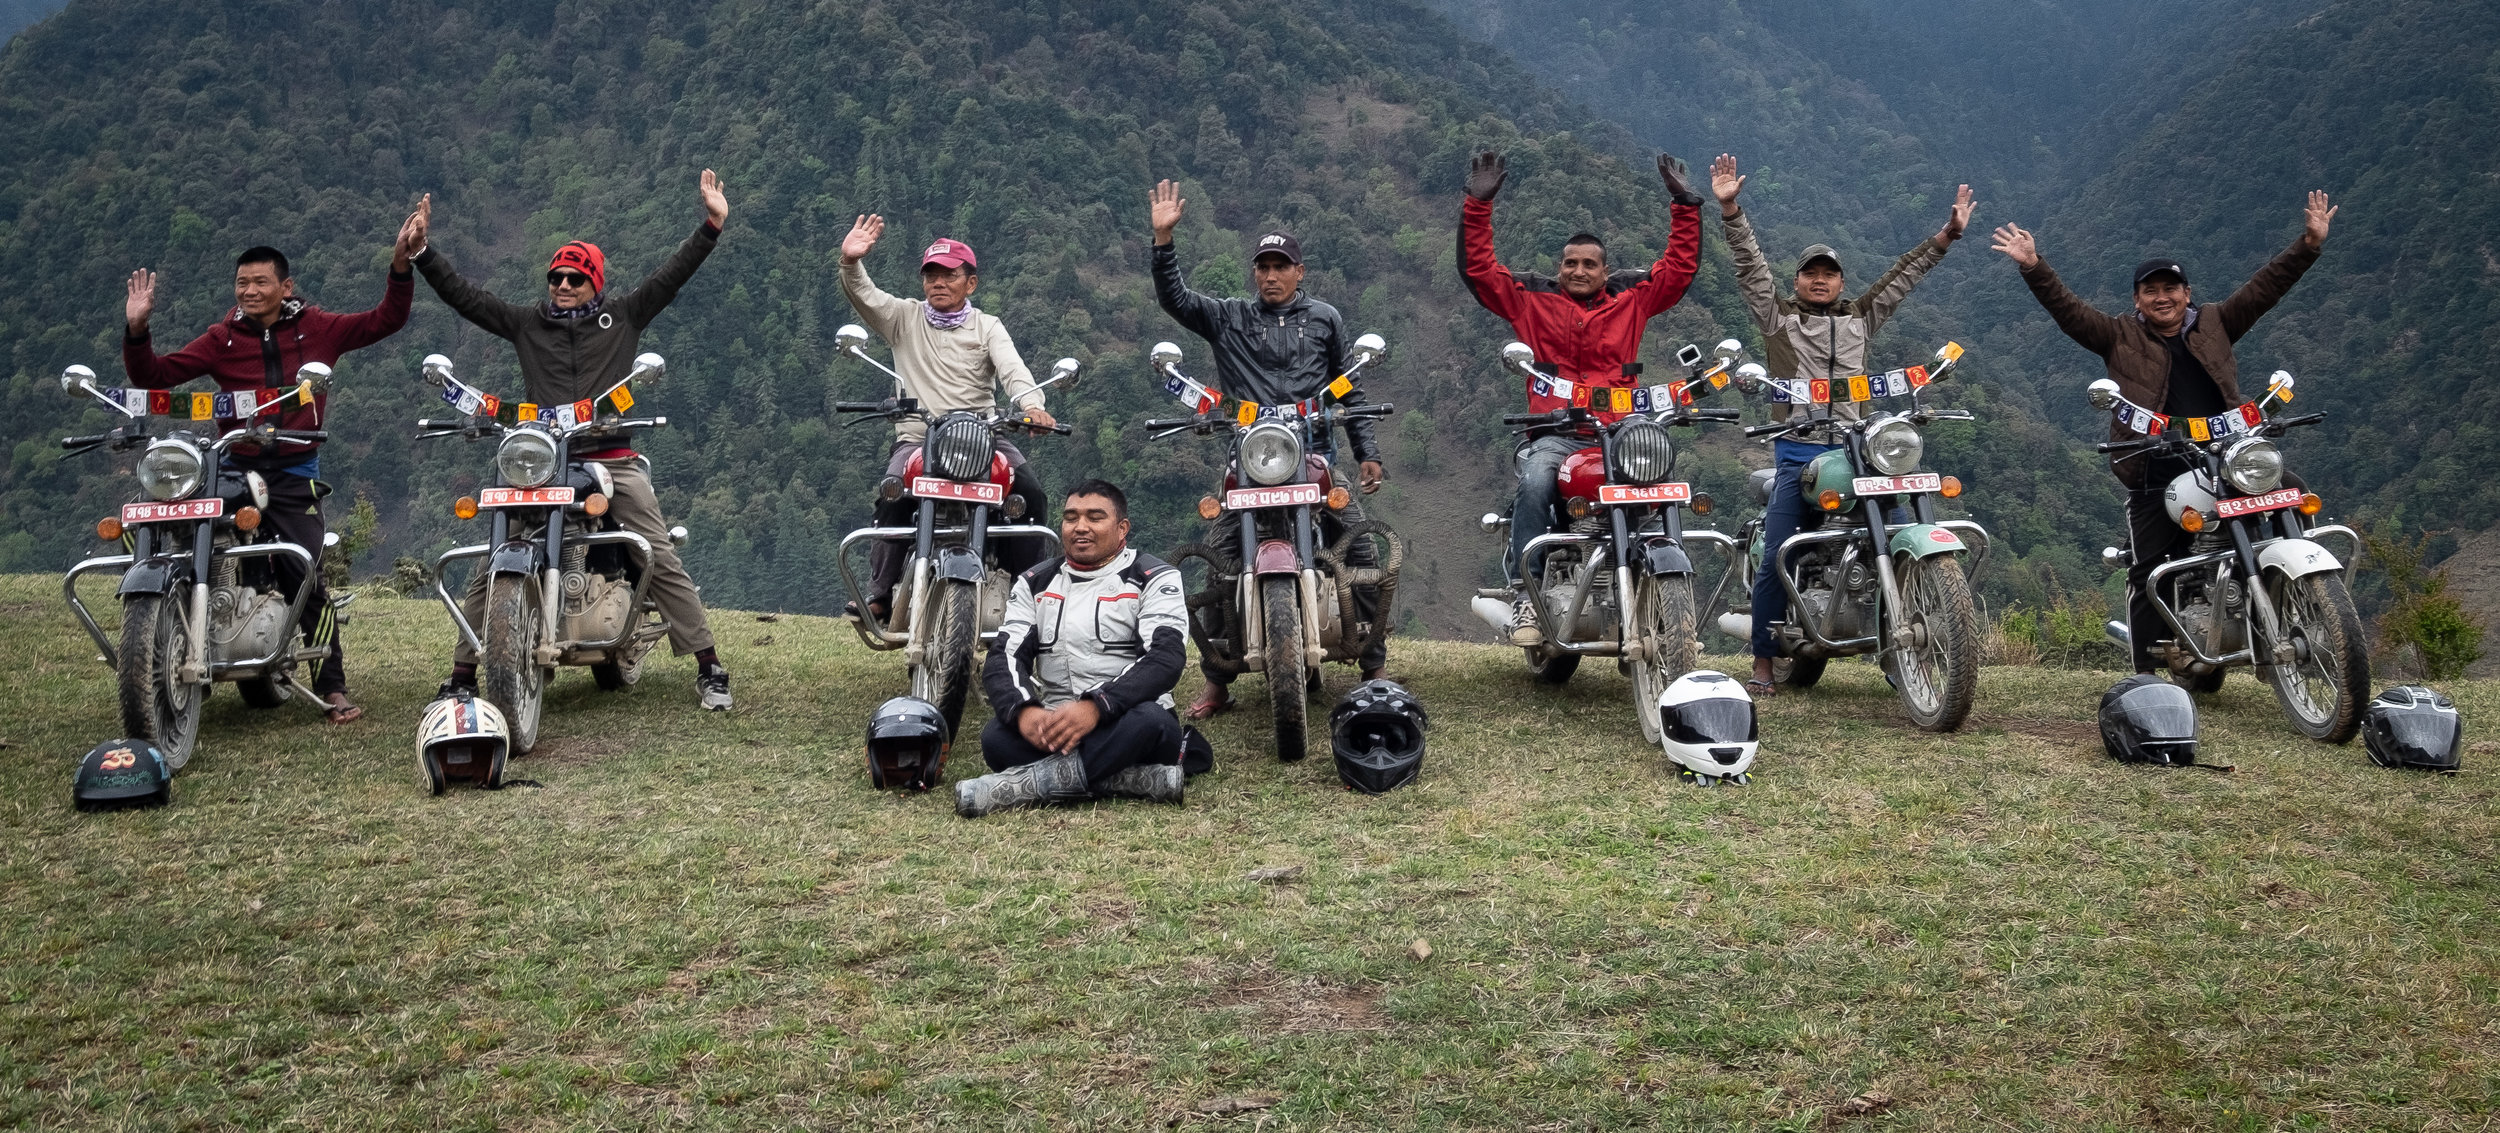 Travel with the most experienced and dedicated support staff in Nepal. From Everest Basecamp to remote expeditions in India and Tibet, these guys have done it all, and now they want to do it all for you.